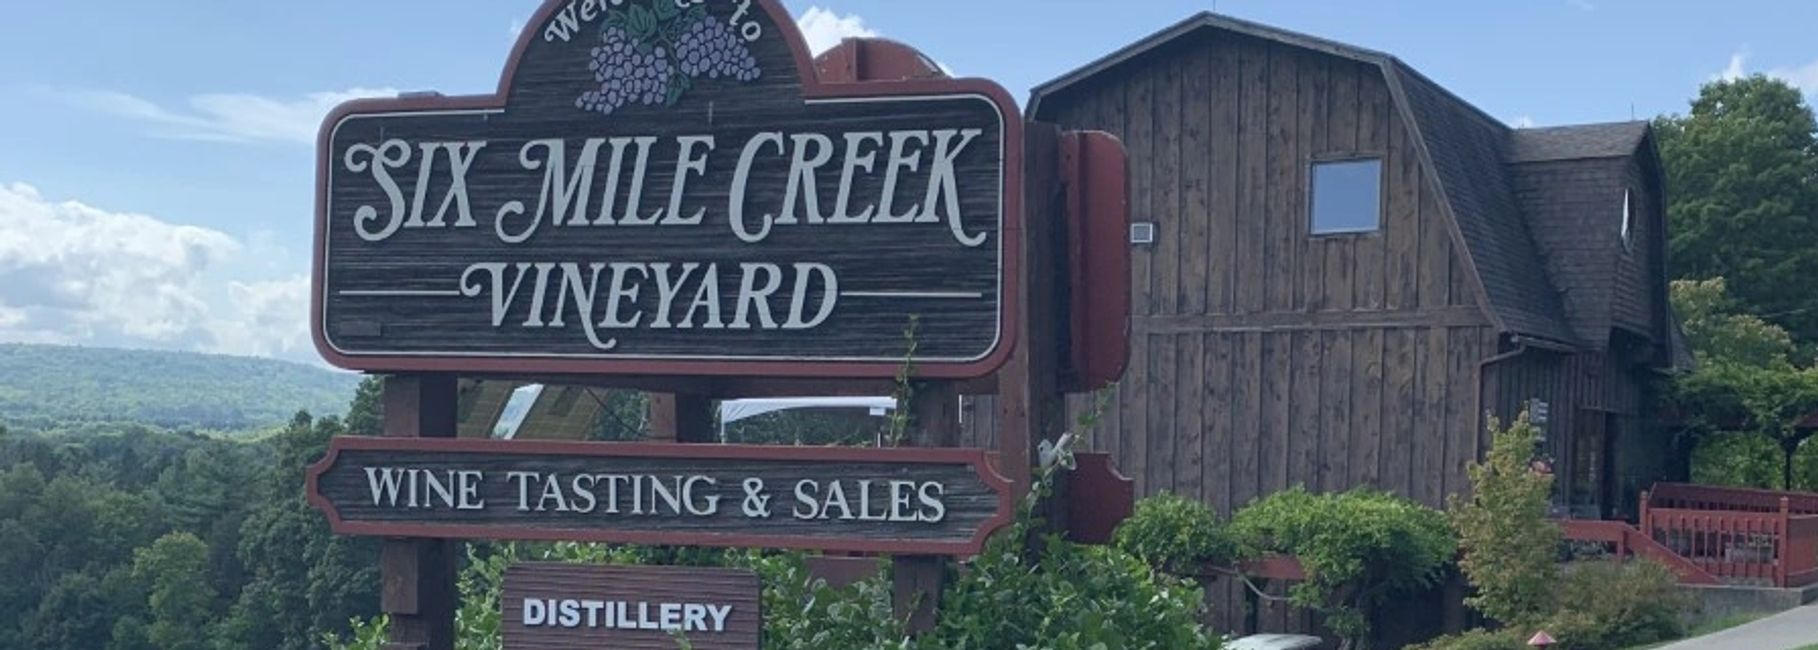 Six Mile Creek Vineyard sign and tasting room